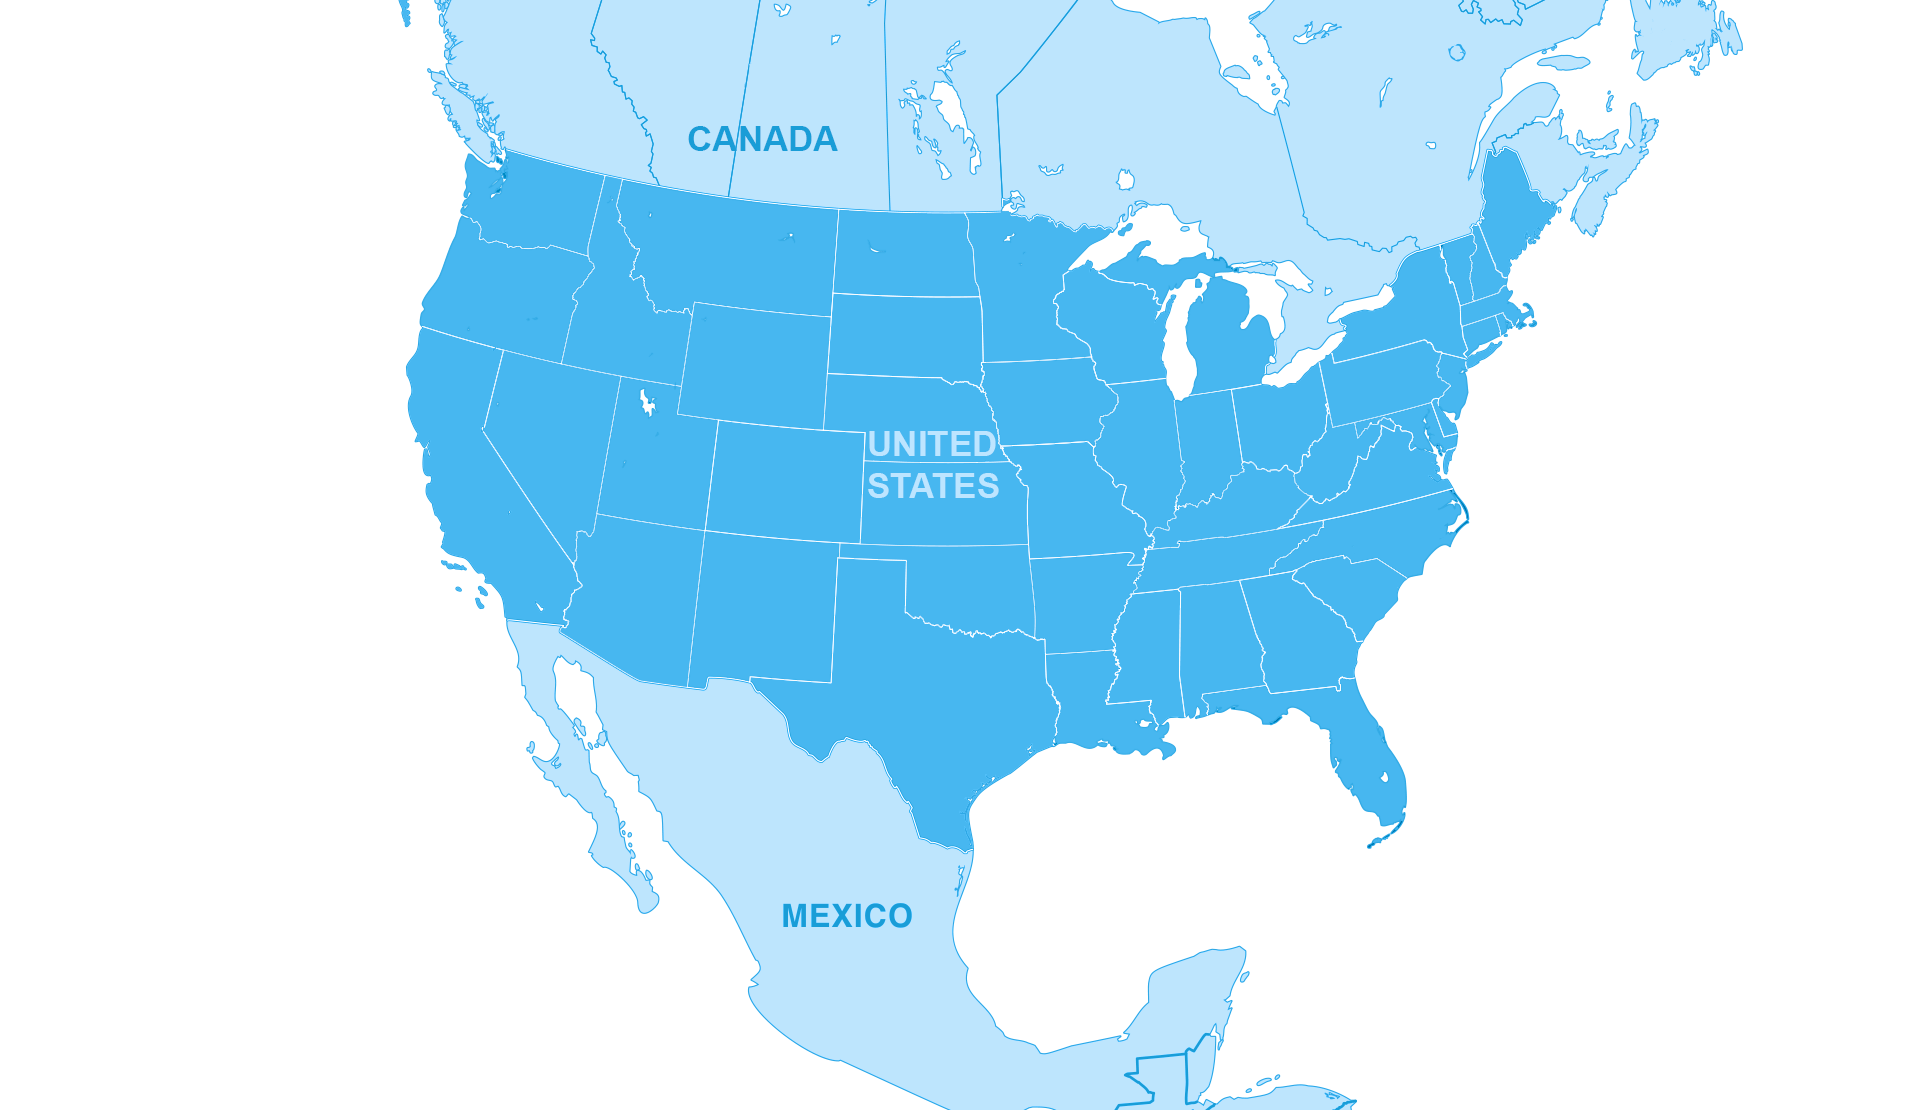 Map Of Canada Usa Mexico Network Map   Canada, USA, Mexico Truckload and LTL Services